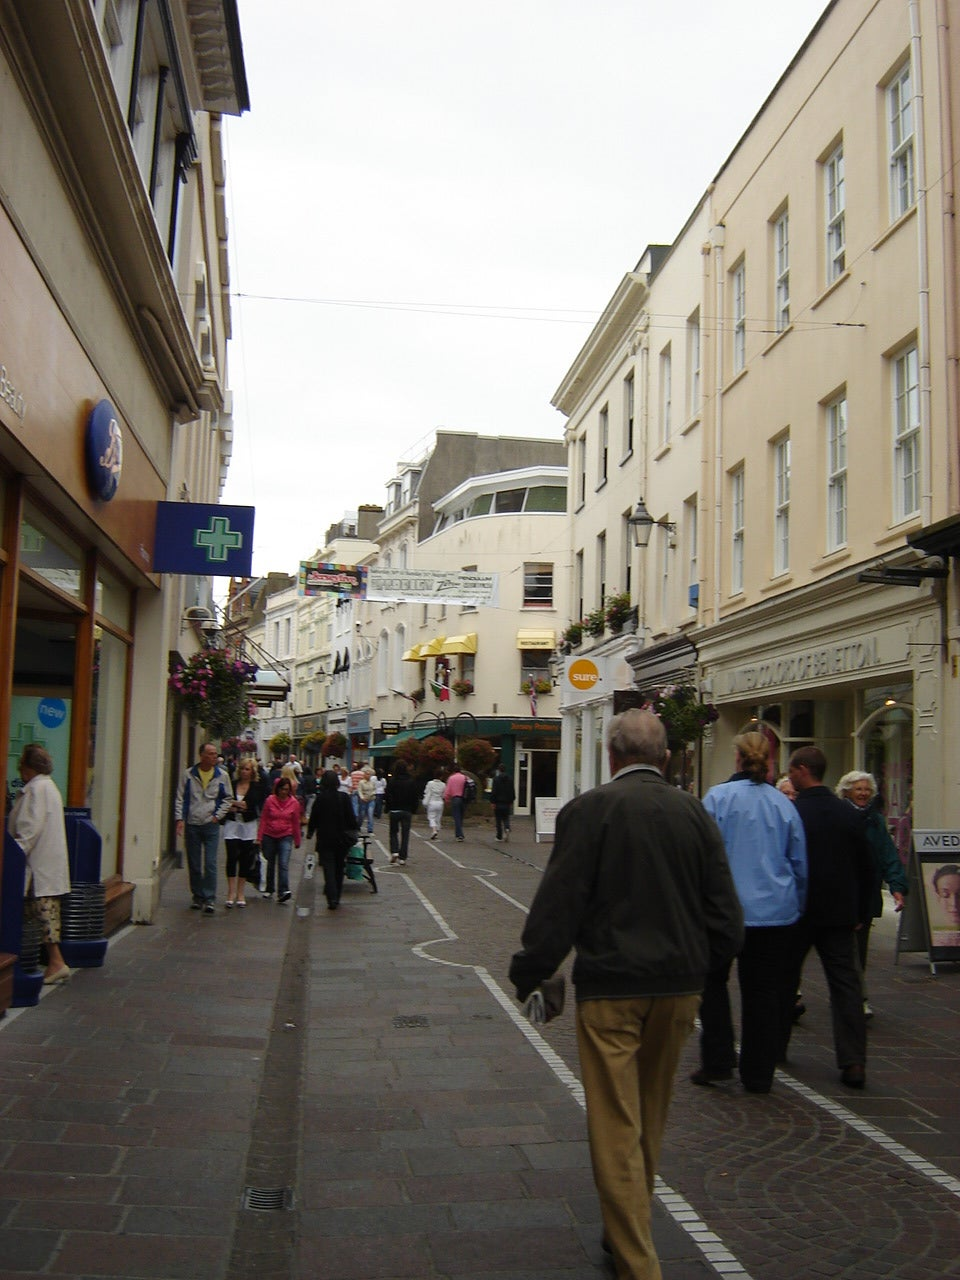 Town in Jersey